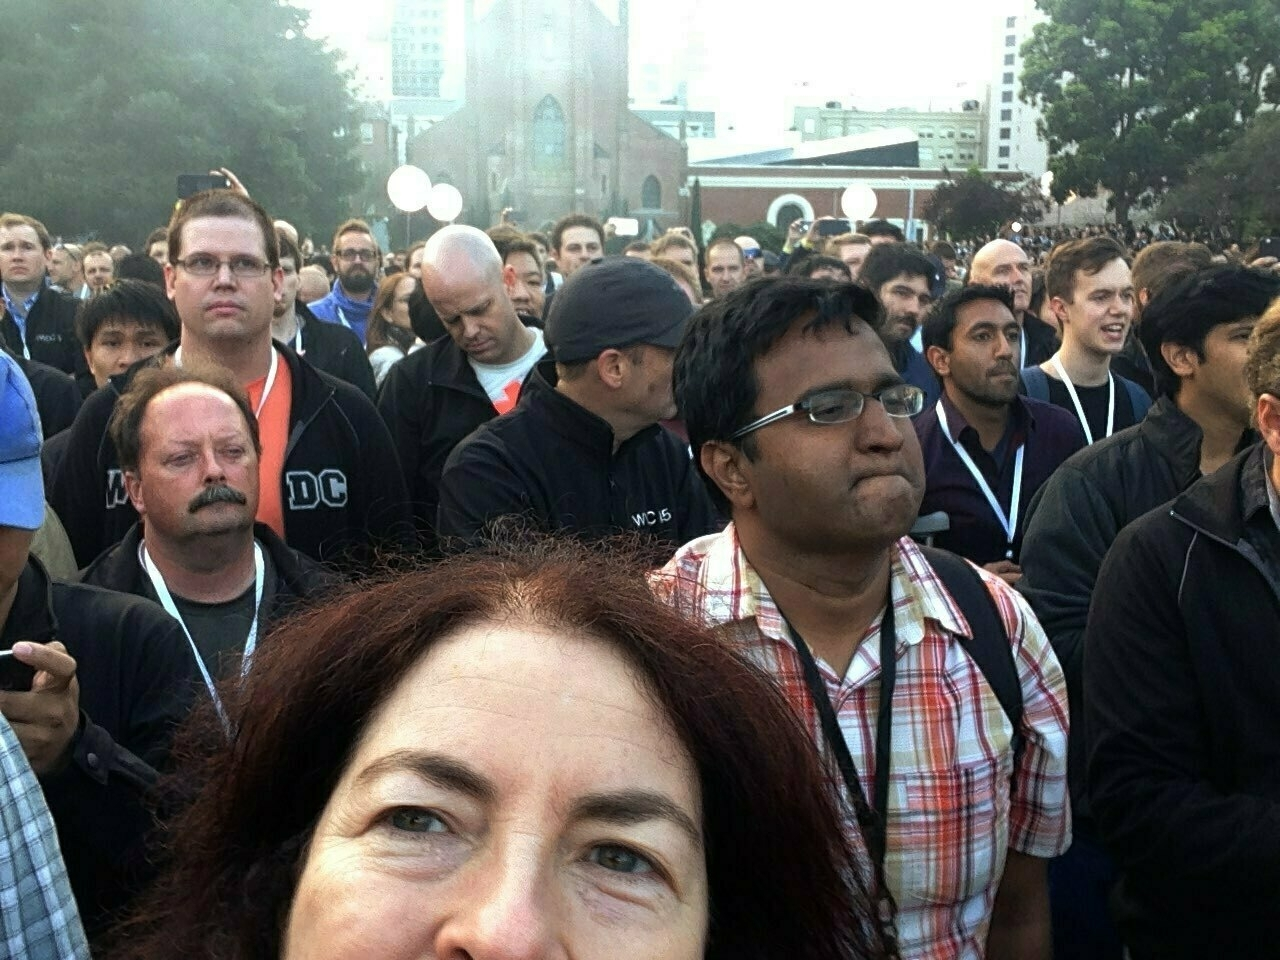 Me and a large crowd of software developers.